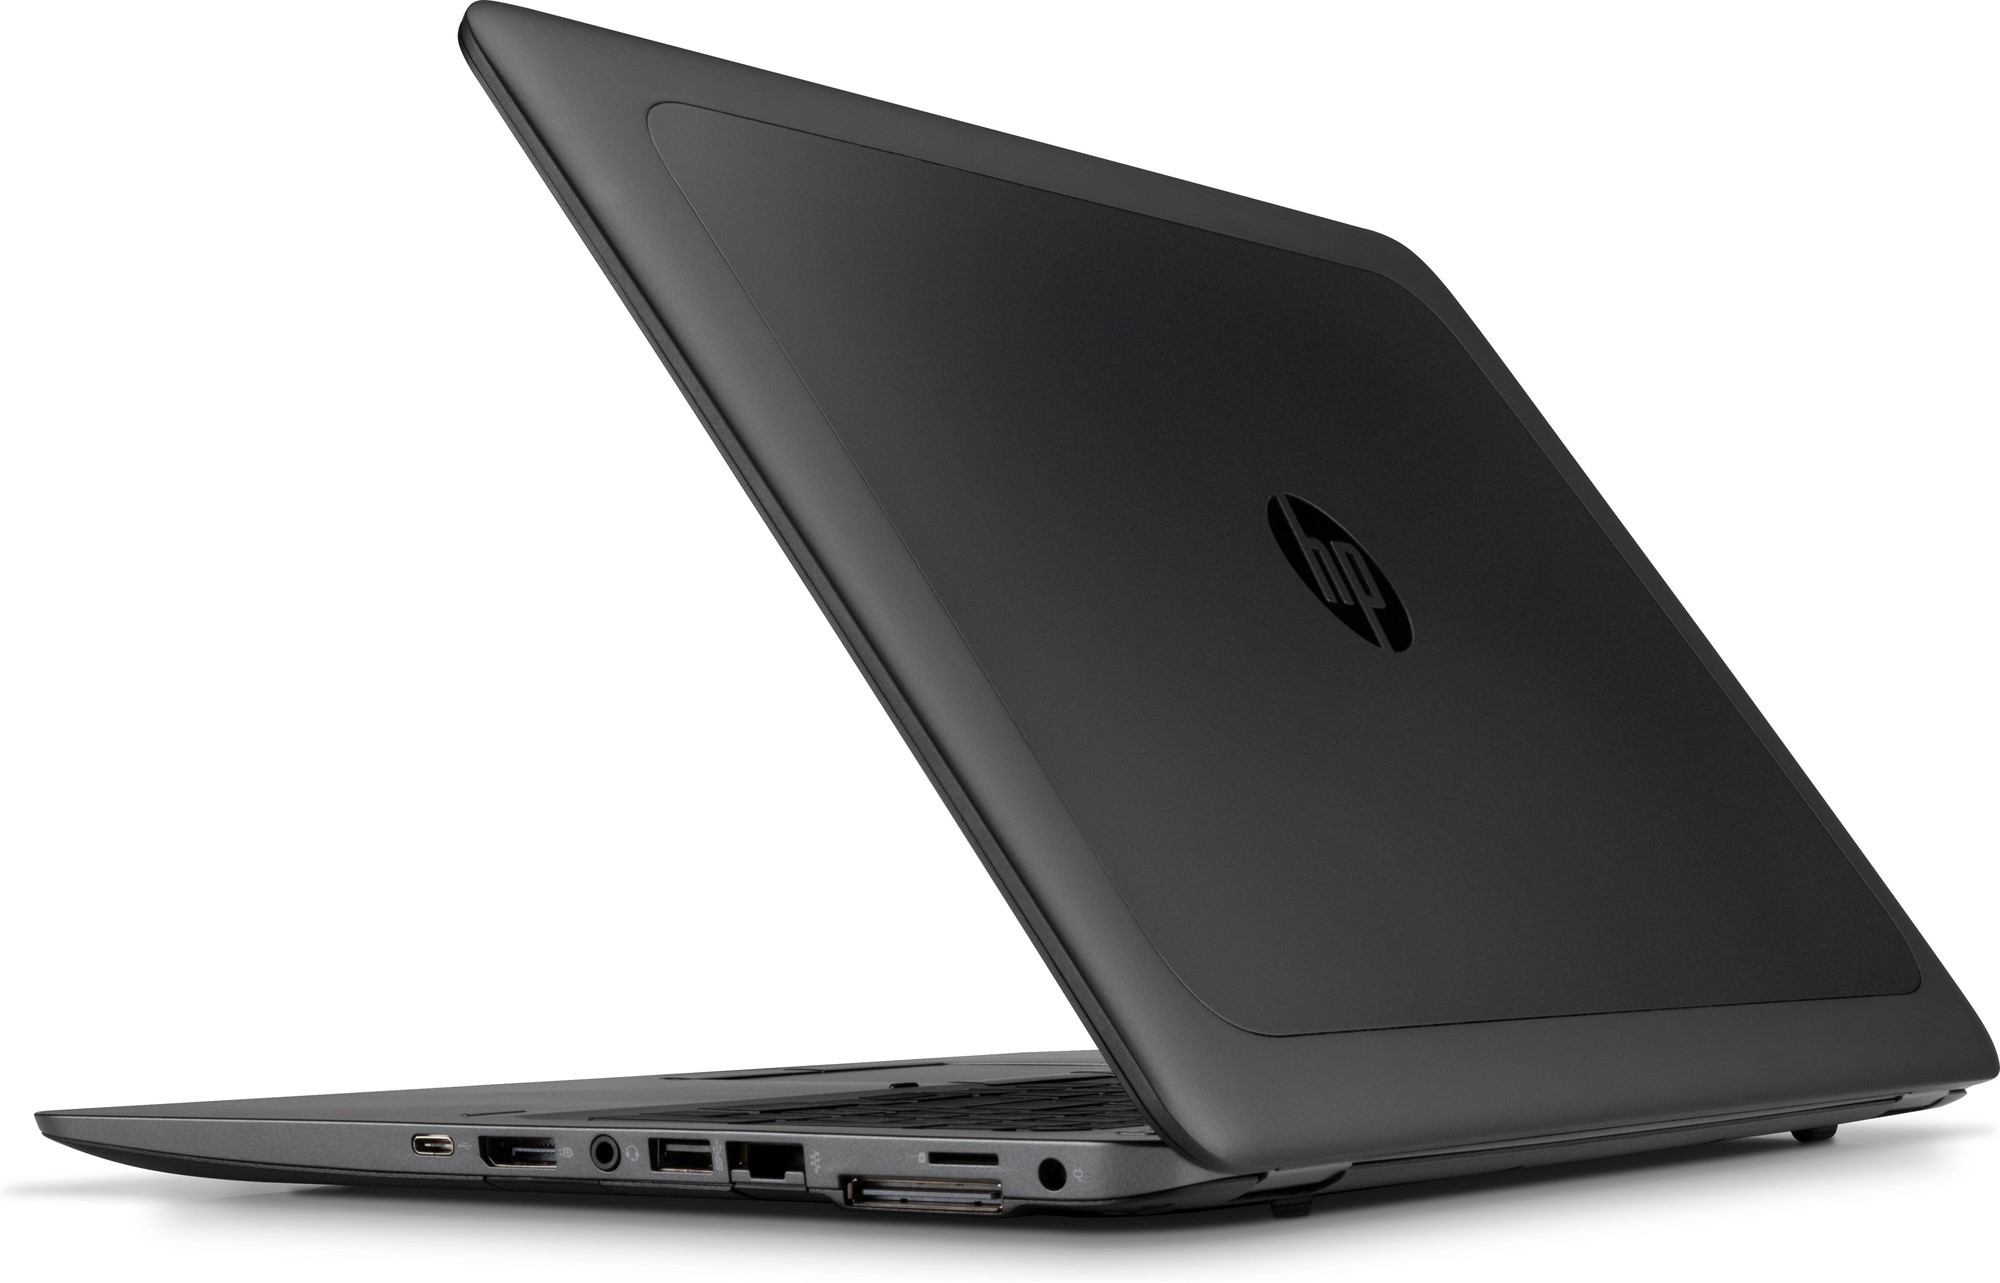 HP ZBook 15U G4 MOBILE WORKSTATION